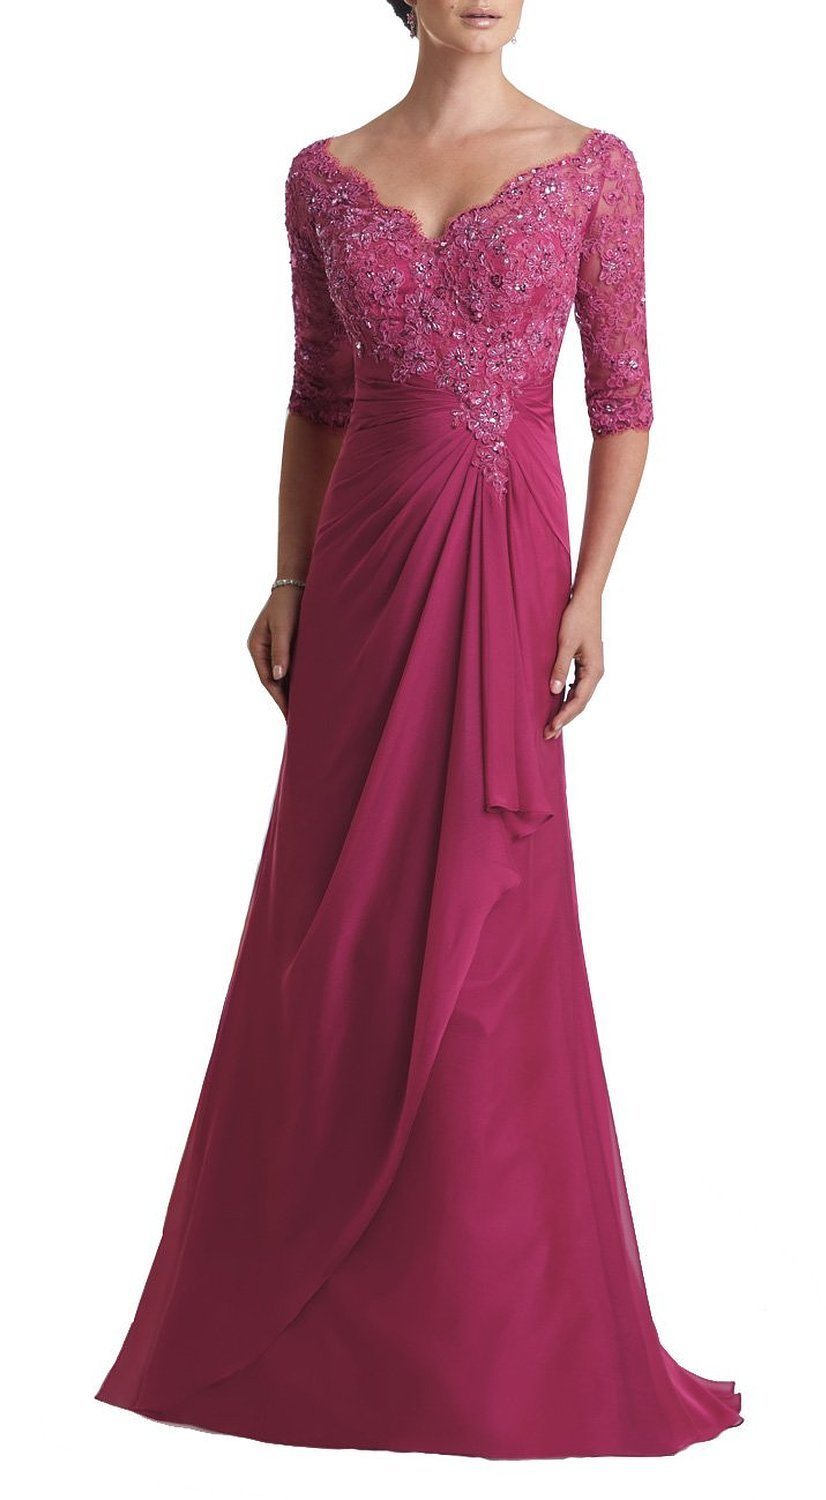 9c7d5c4d9ea Mother Of The Bride Dresses Amazon.ca - Gomes Weine AG